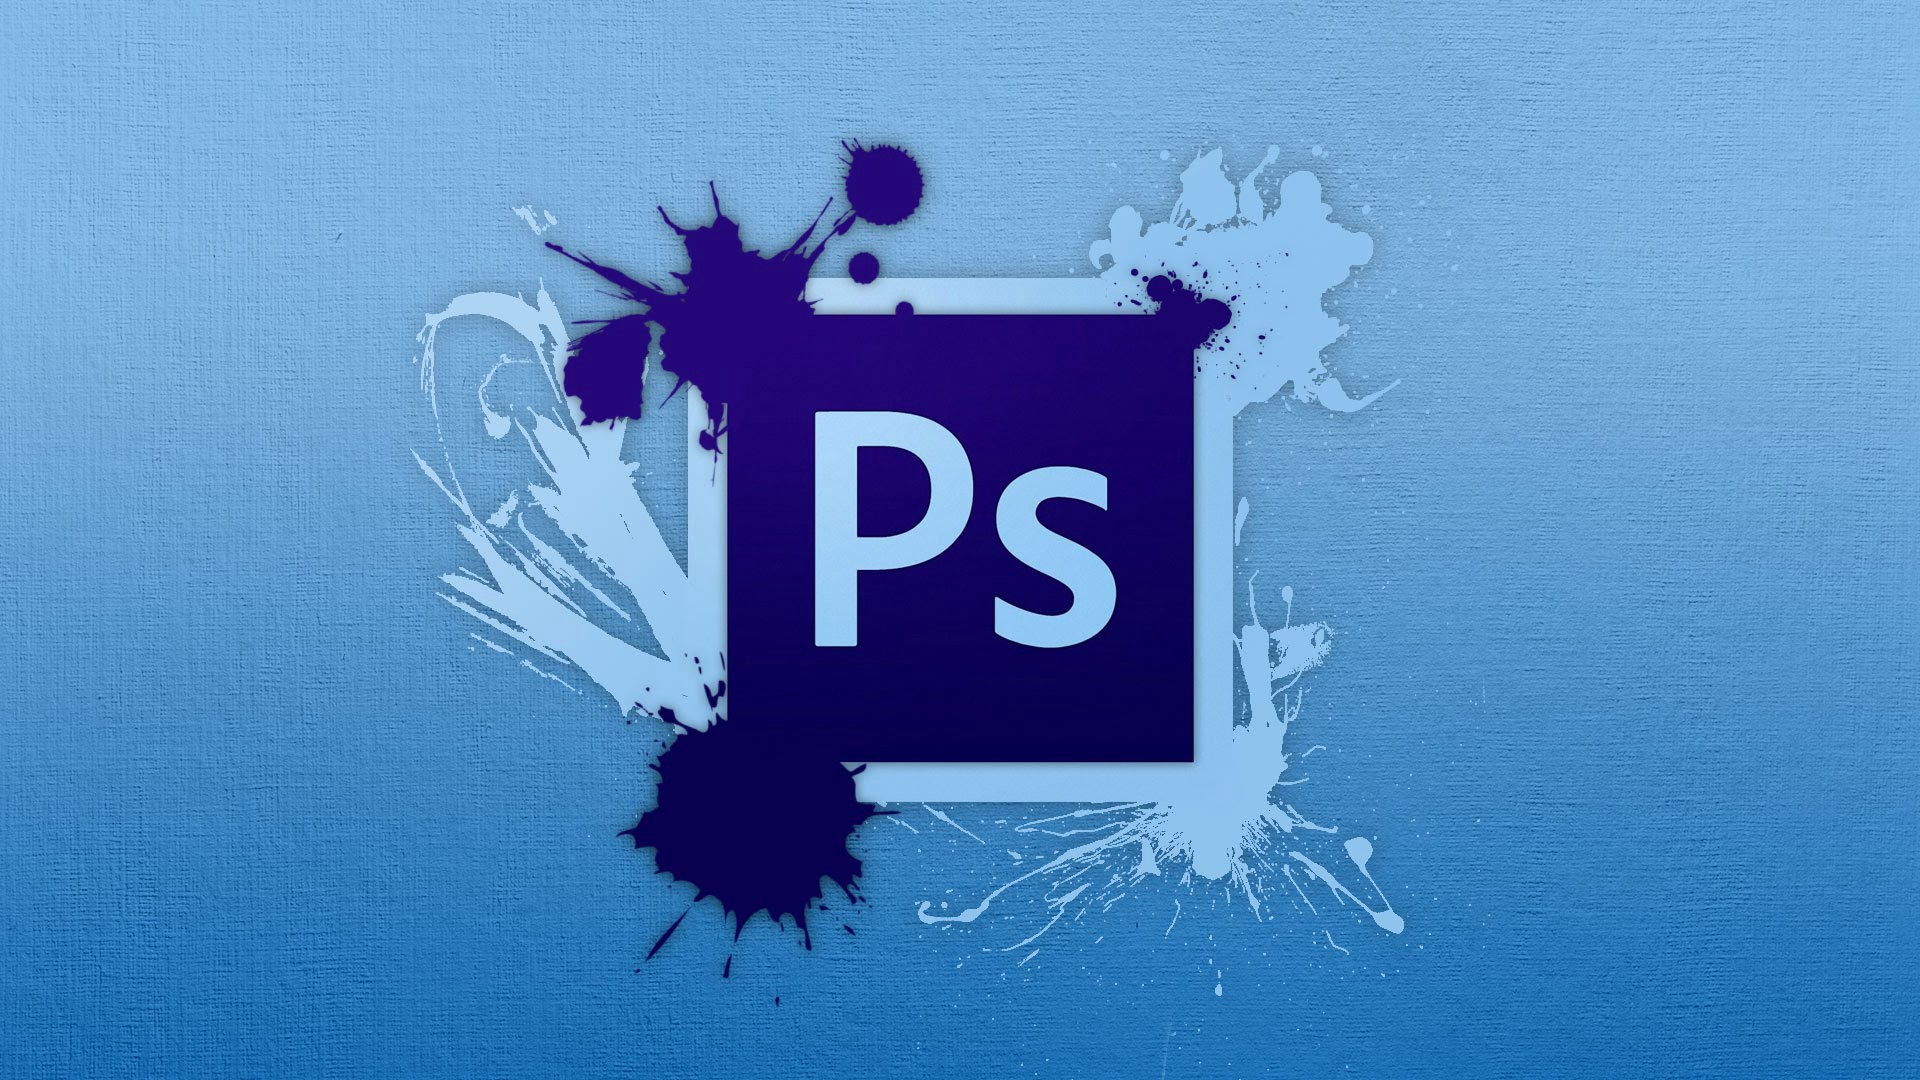 7 Amazing Photoshop Plugins For Web Designers By Uxness Uxness Medium The industry standard in digital imaging and used by professionals worldwide for design, photography, video editing. 7 amazing photoshop plugins for web